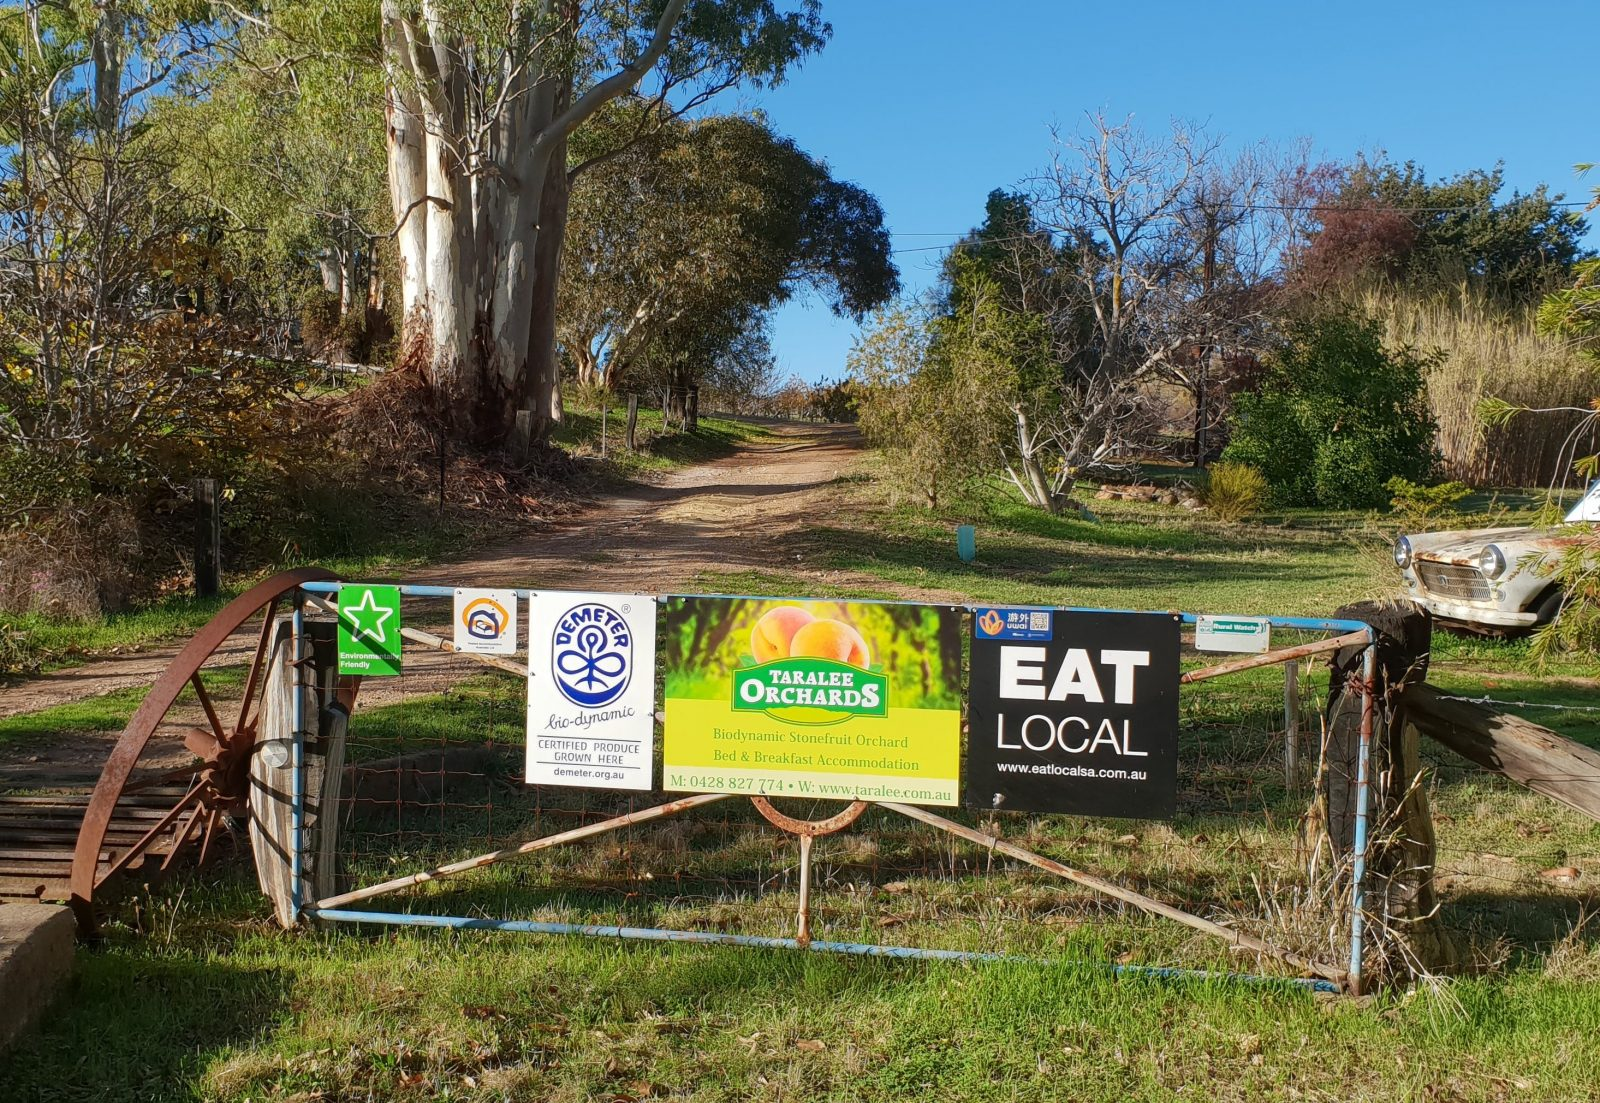 Entrance to taralee Orchards driveway,